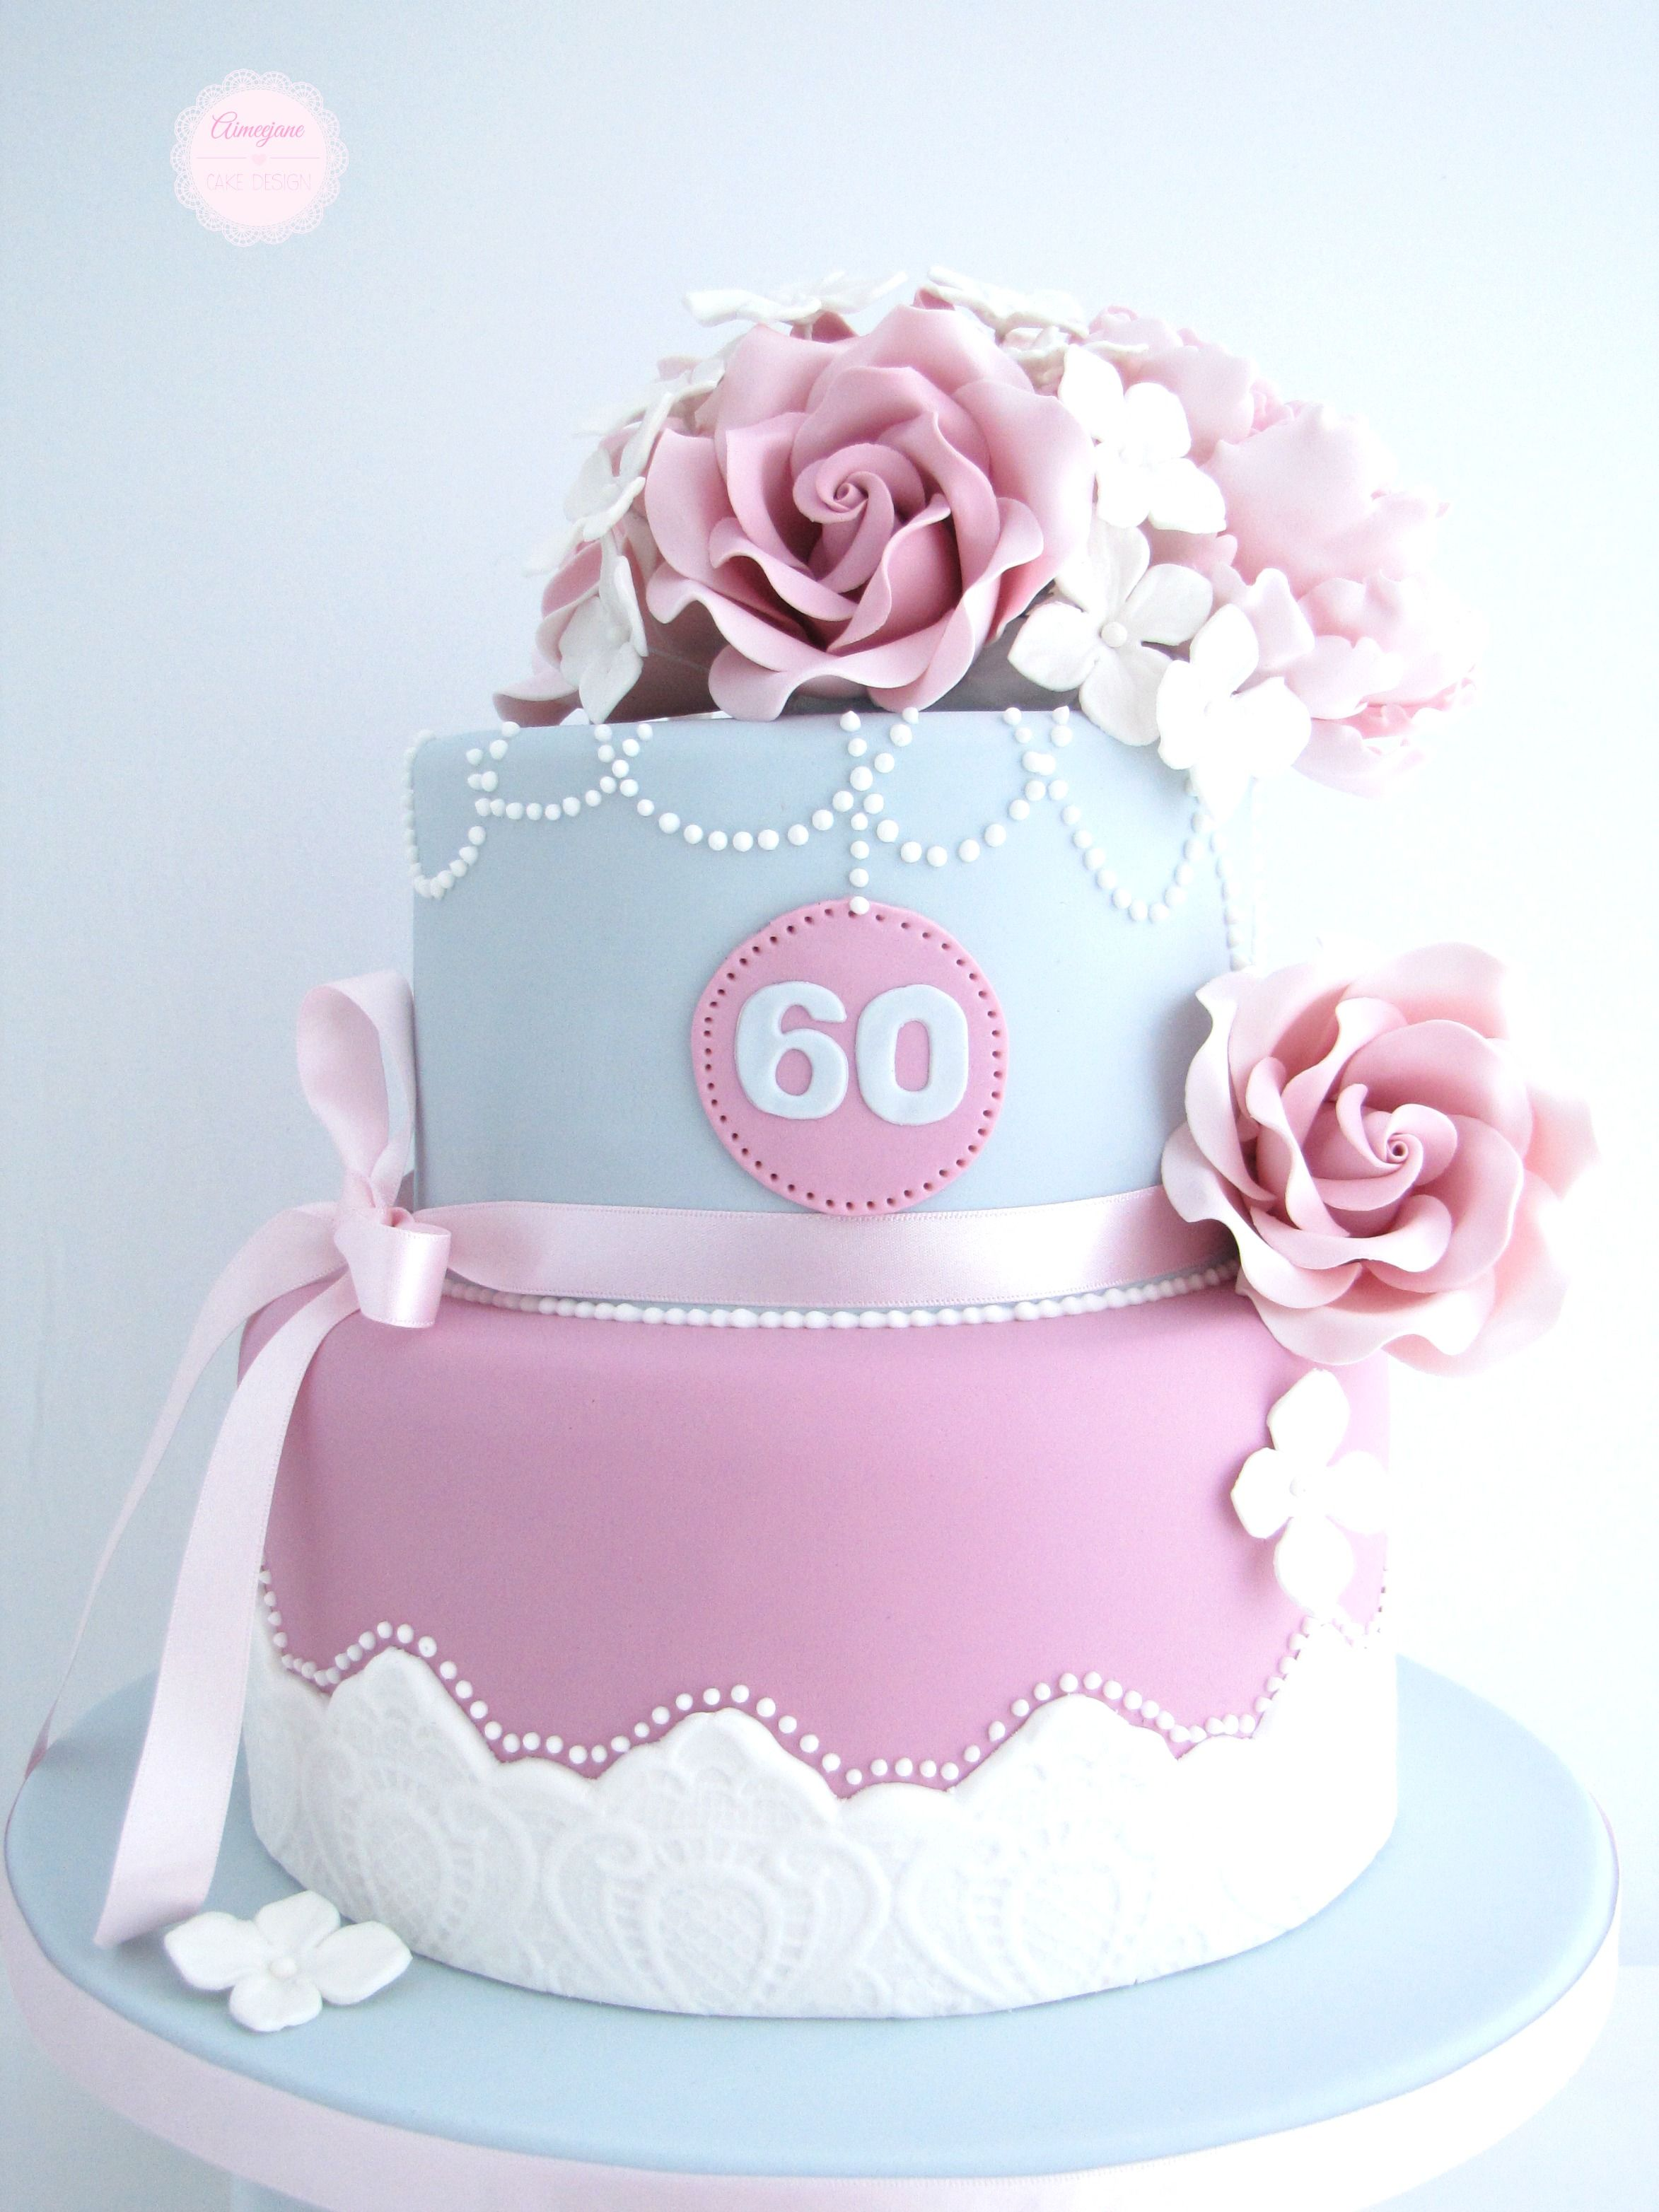 Vintage Birthday Cake Aimeejane Cake Design 60th Pinterest